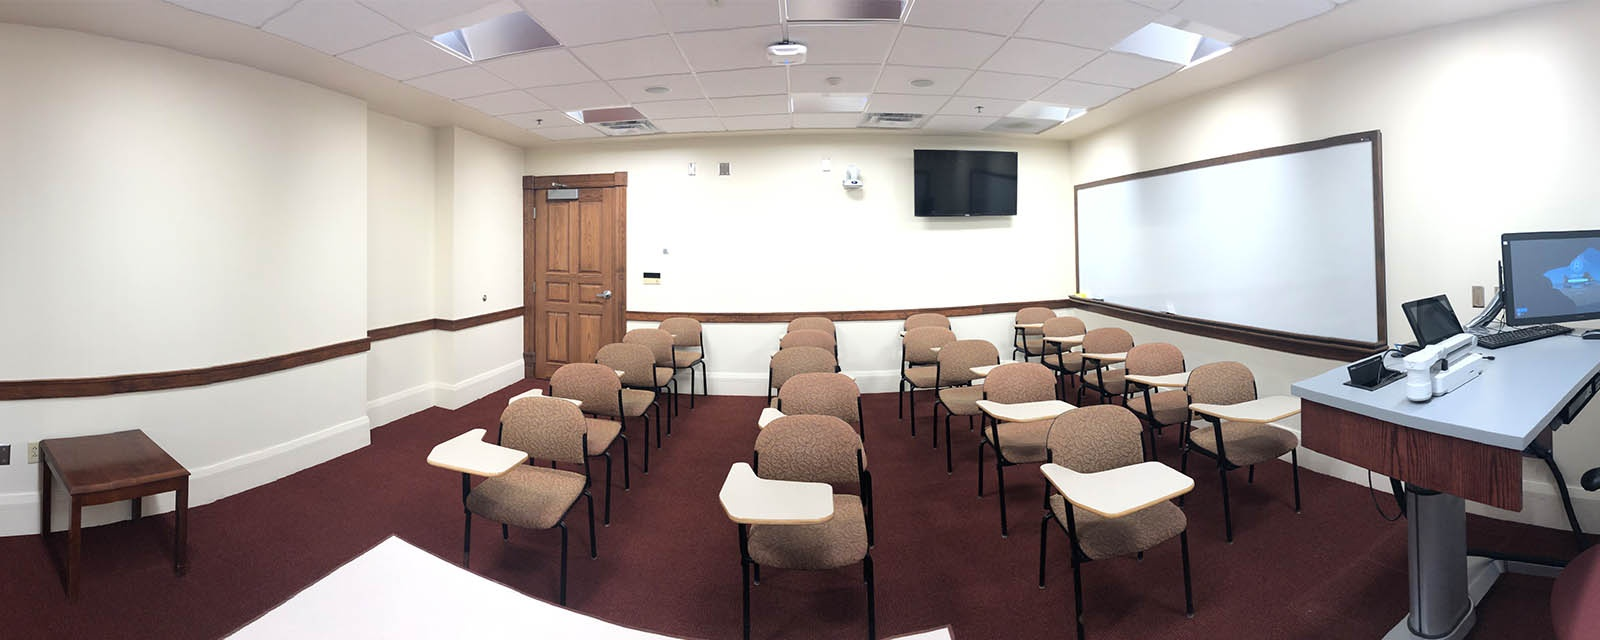 Panorama of Tolley 115 from the front of the room to the rear. The chairs are movable and in rows. The teaching station is fixed and located in the audience's front left of the room.